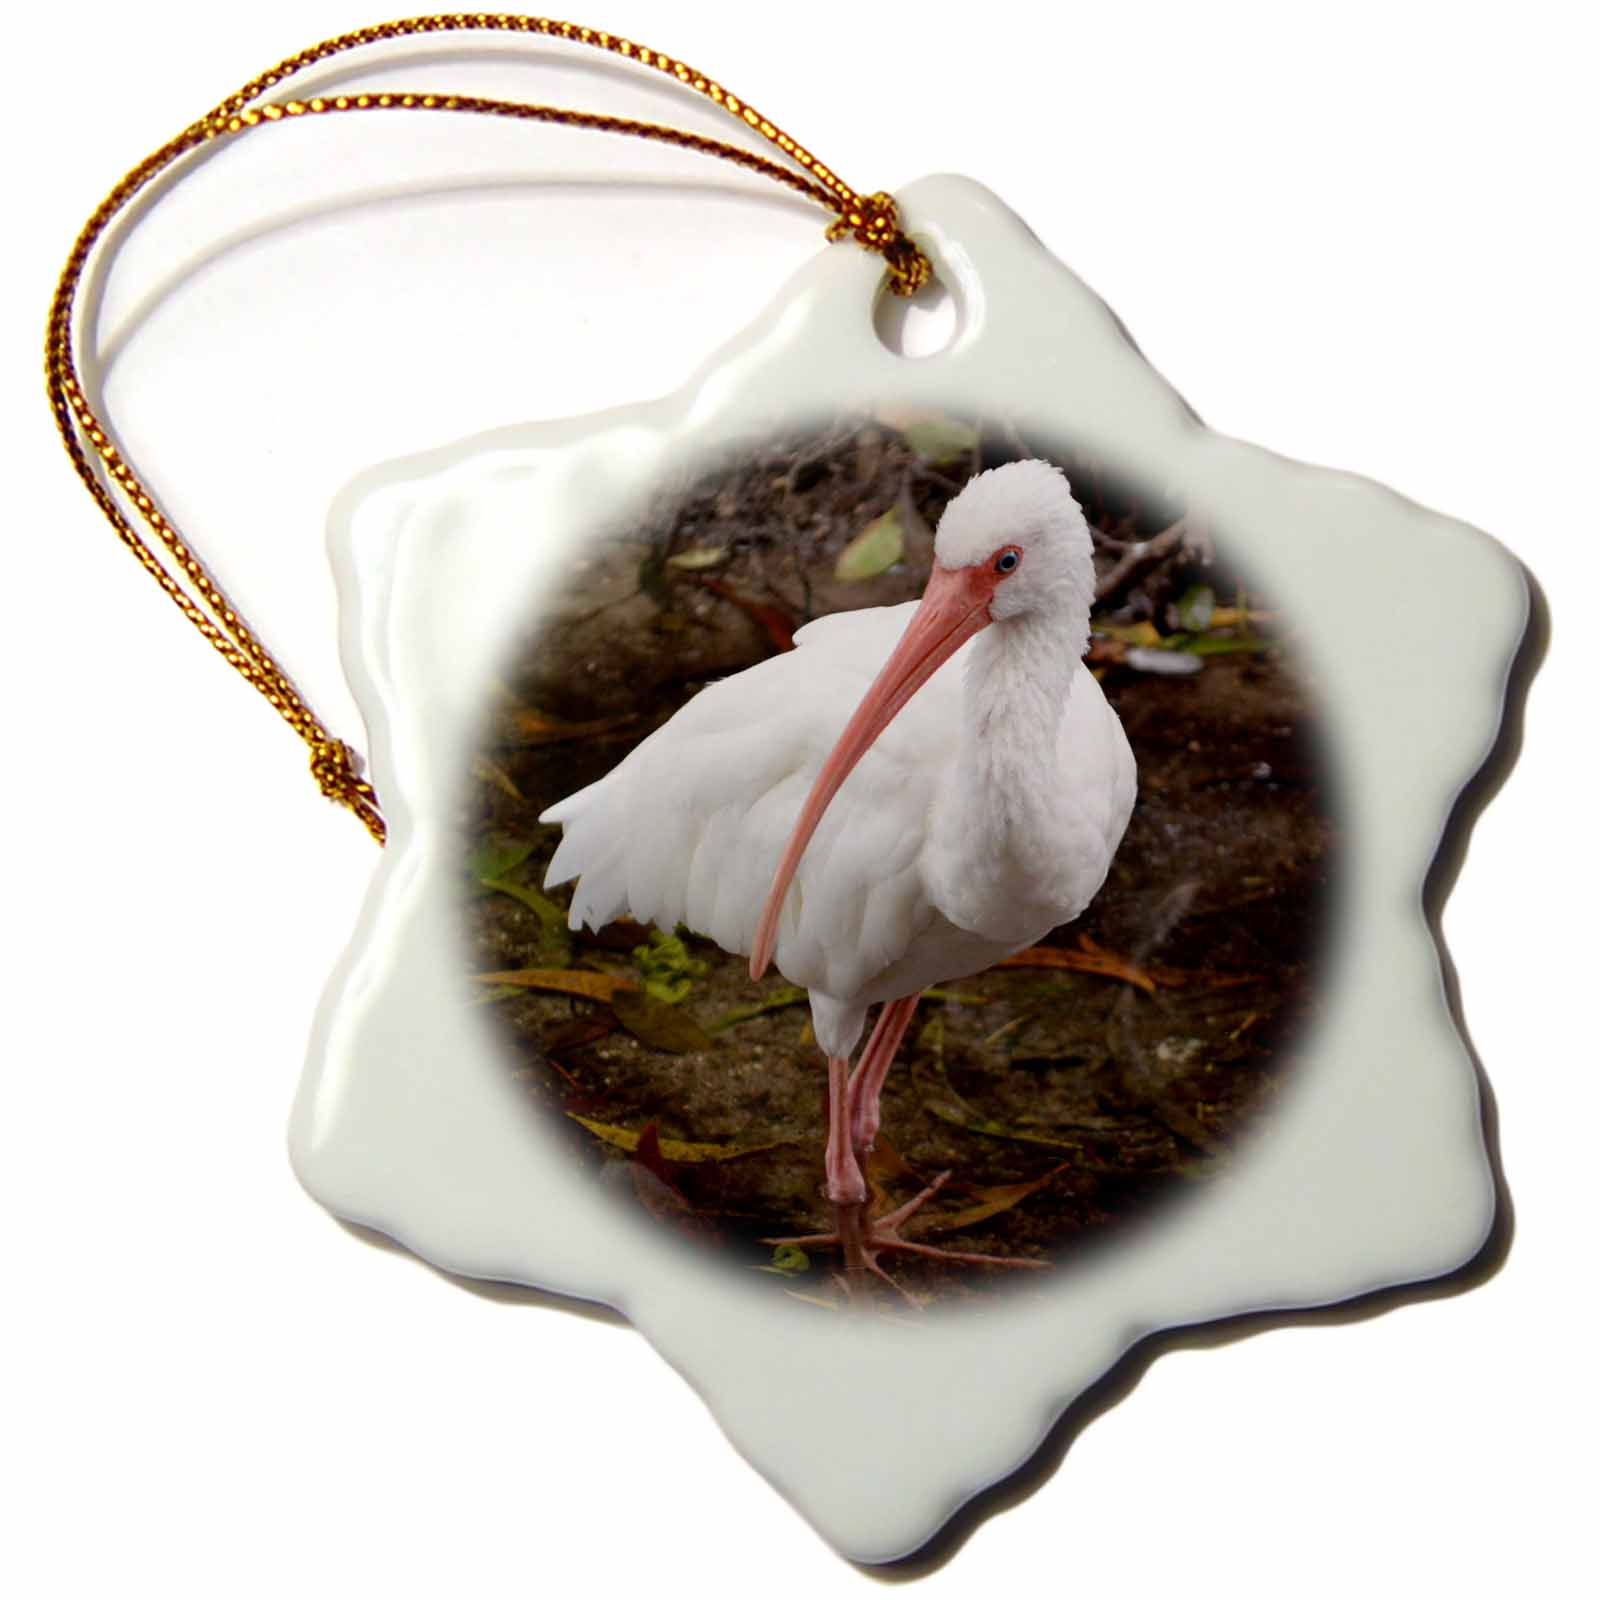 3dRose white ibis in water eying the camera, Snowflake Ornament, Porcelain, 3-inch